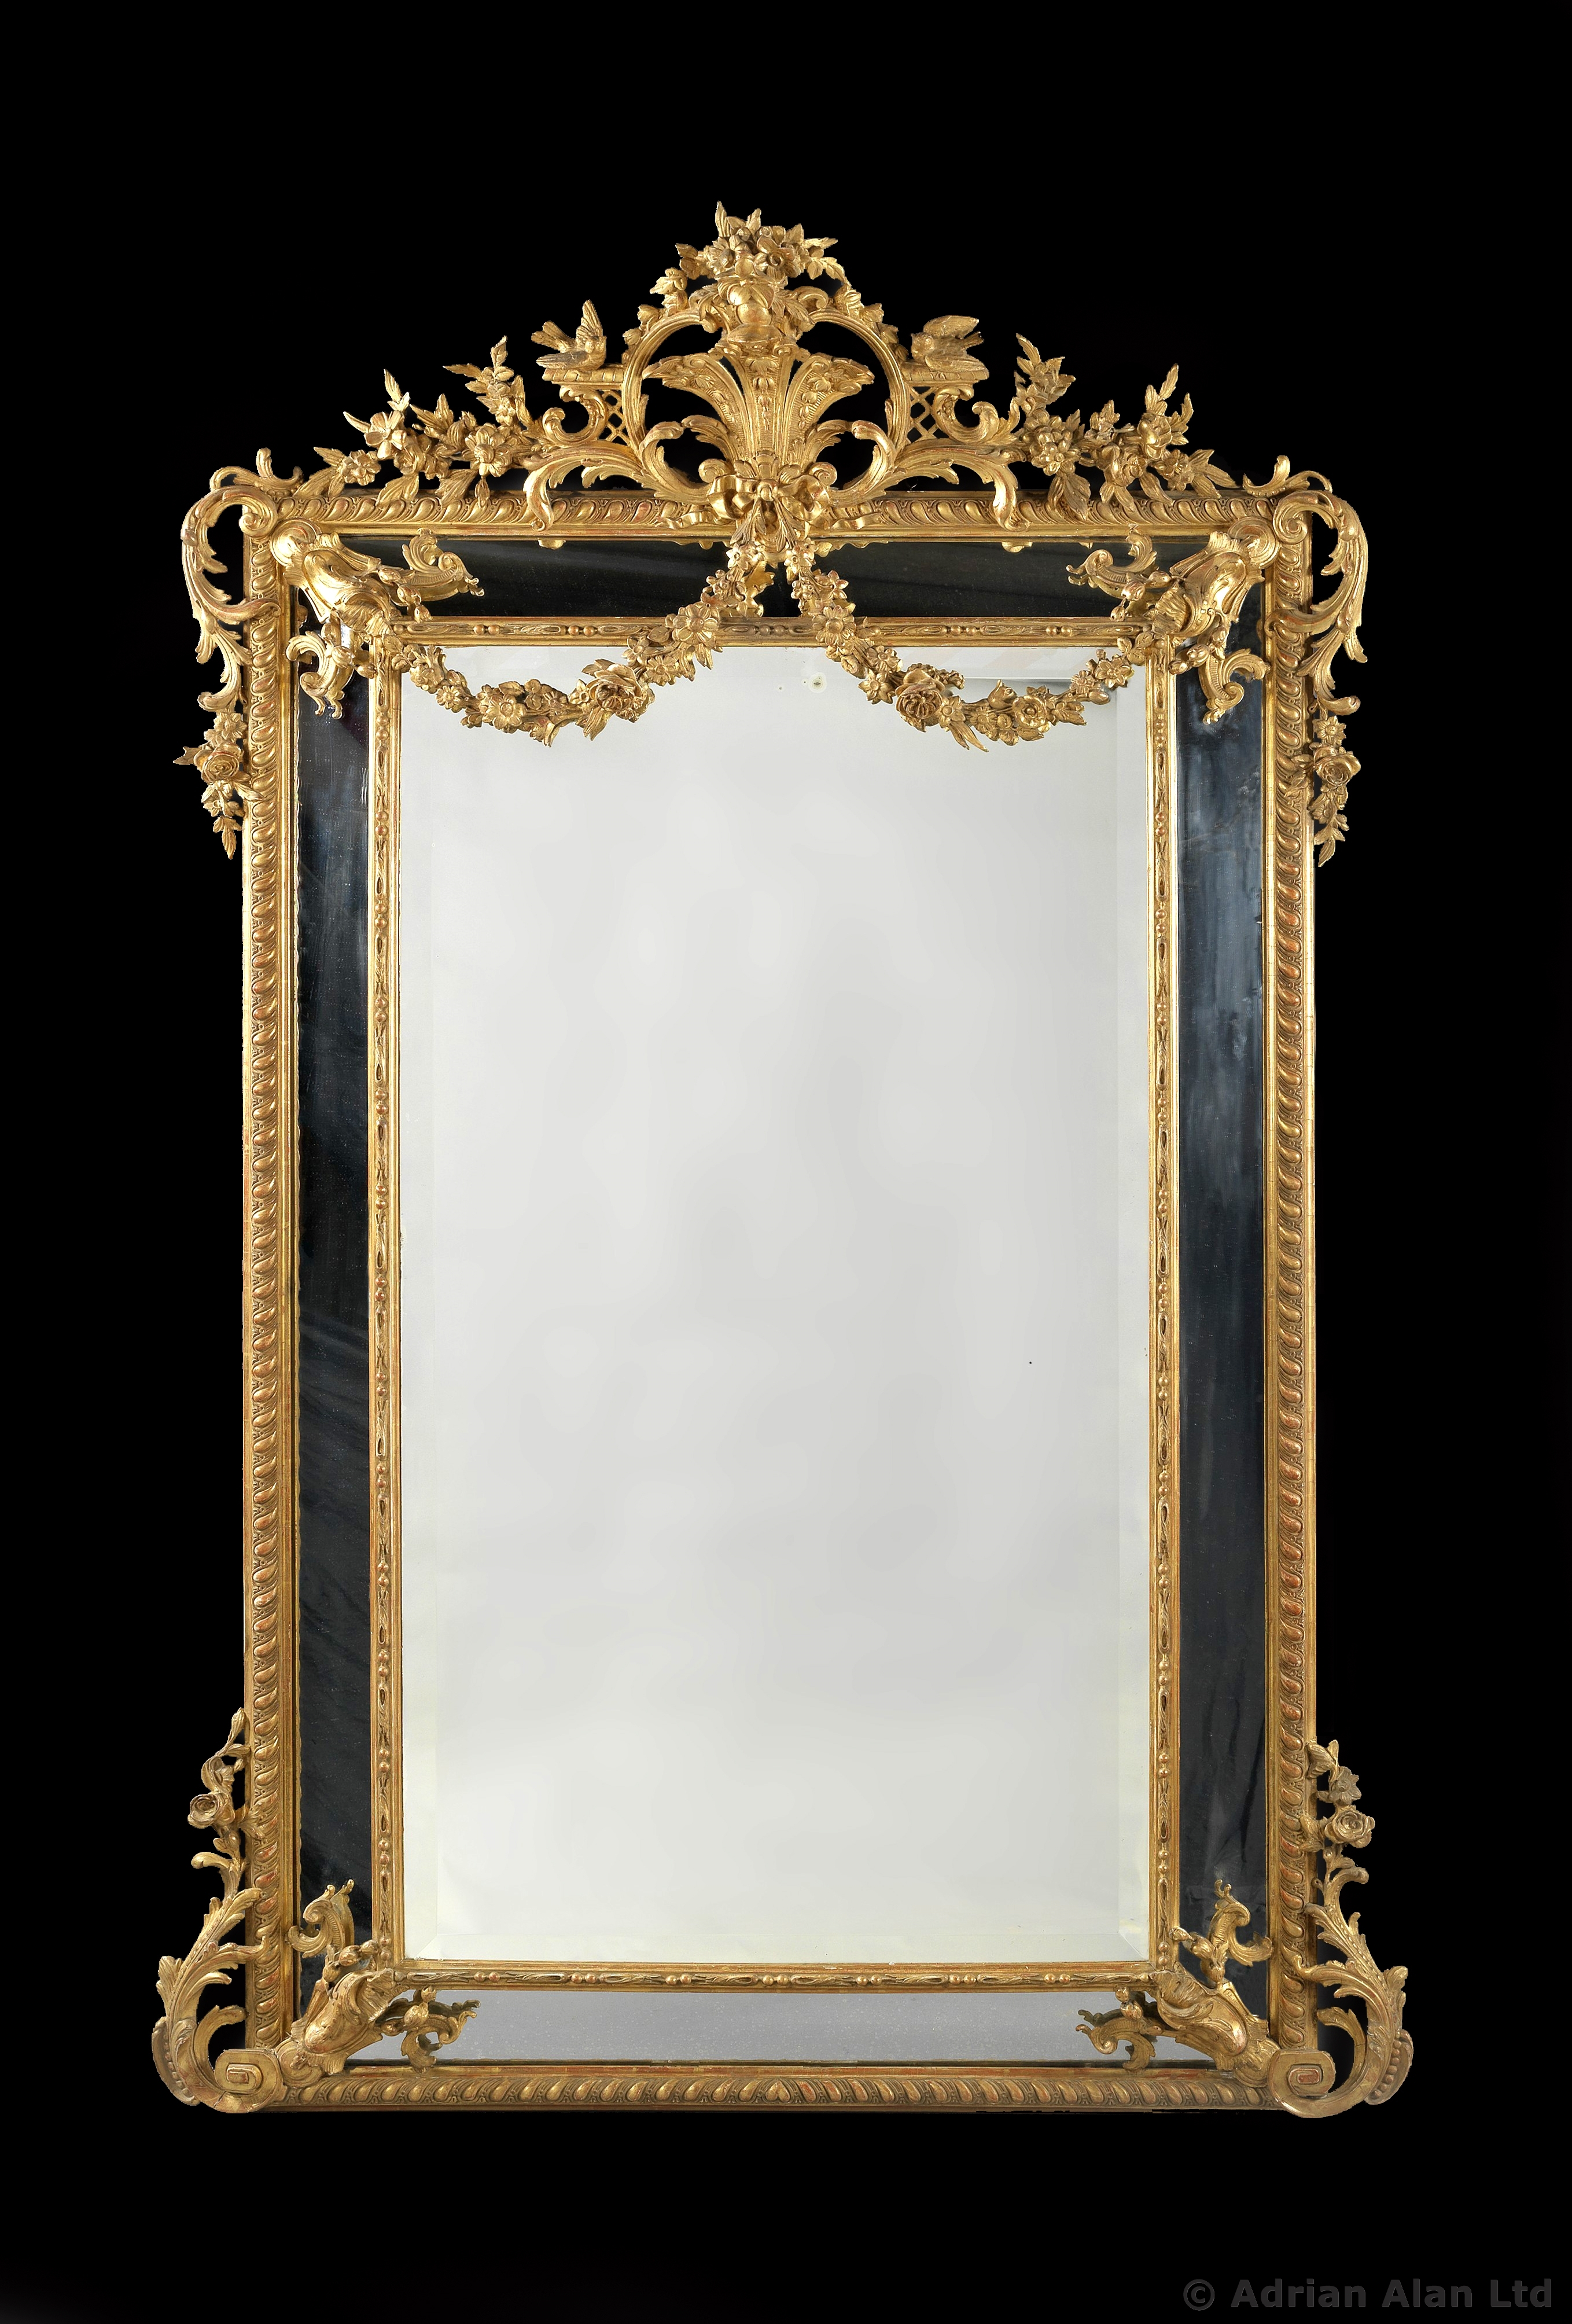 15 Collection Of Gilded Mirrors For Sale Mirror Ideas